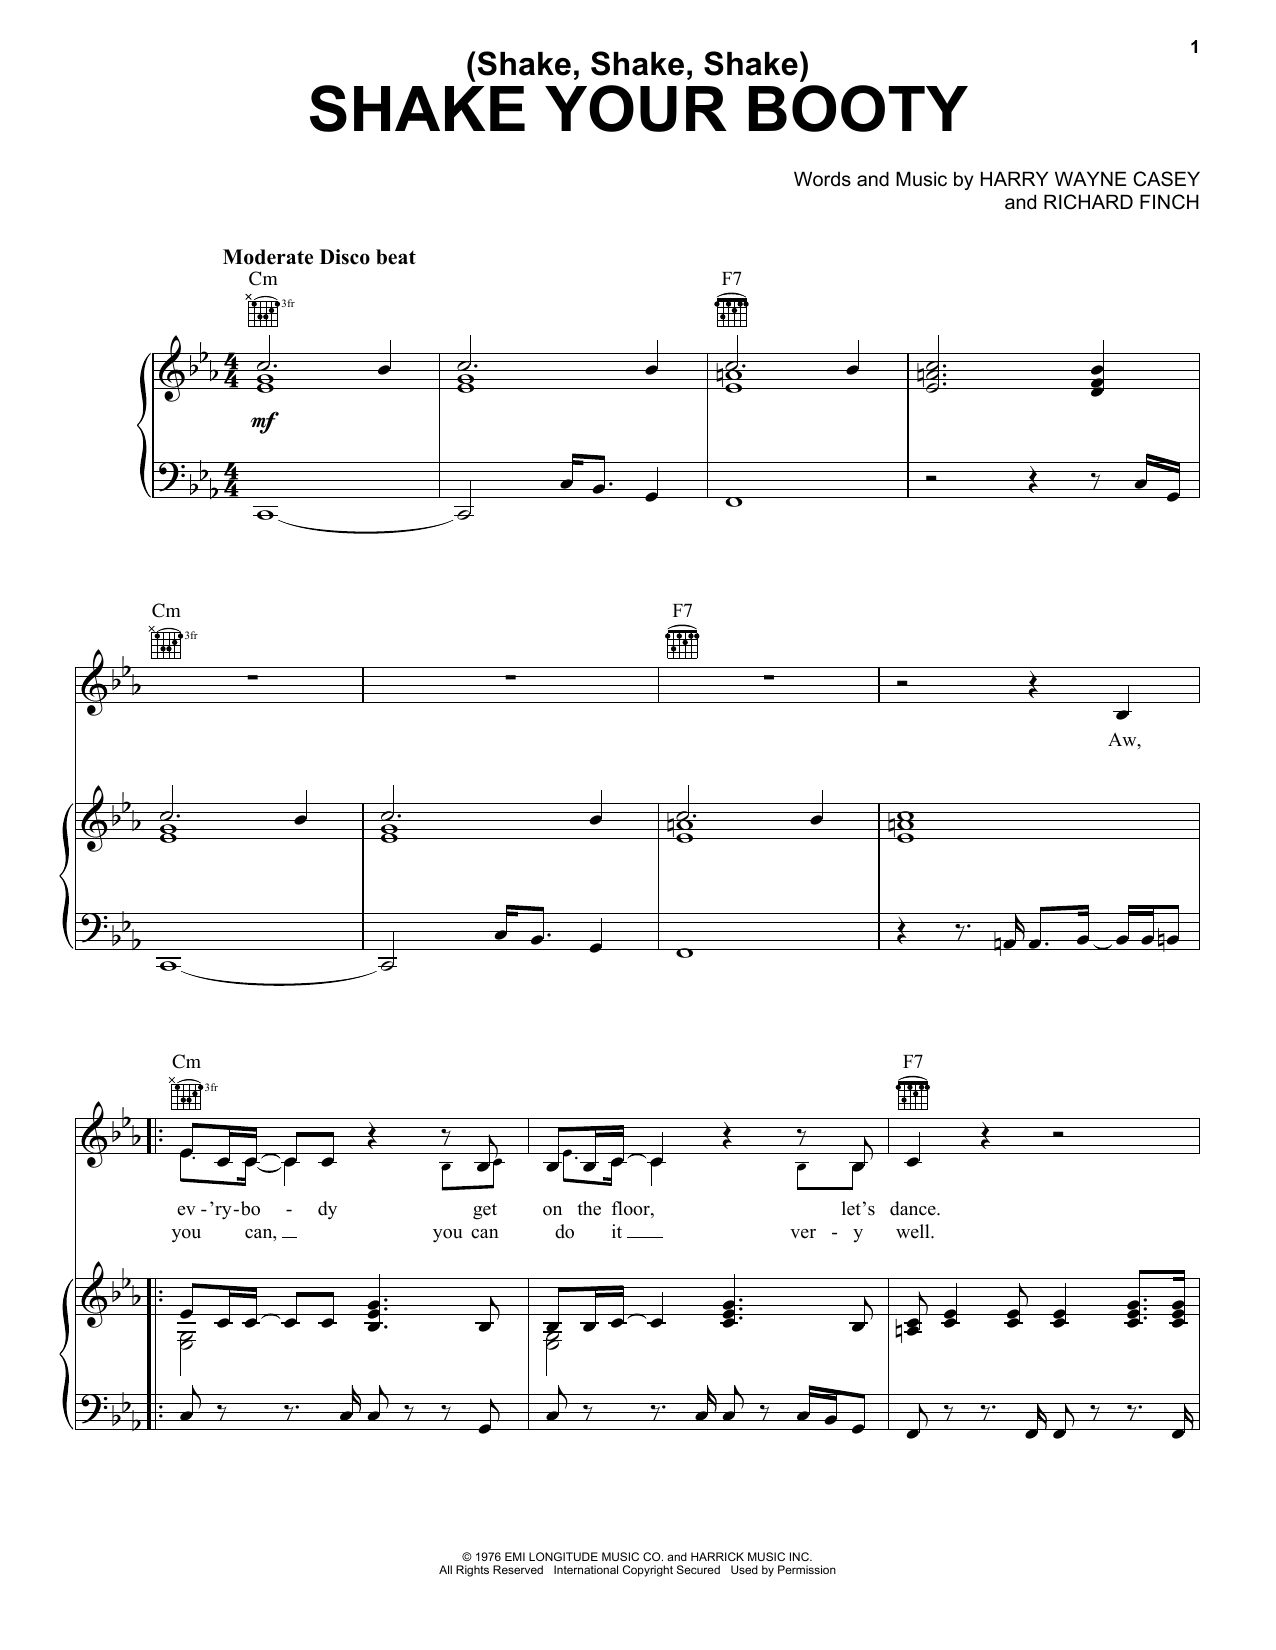 Shake Your Booty Sheet Music